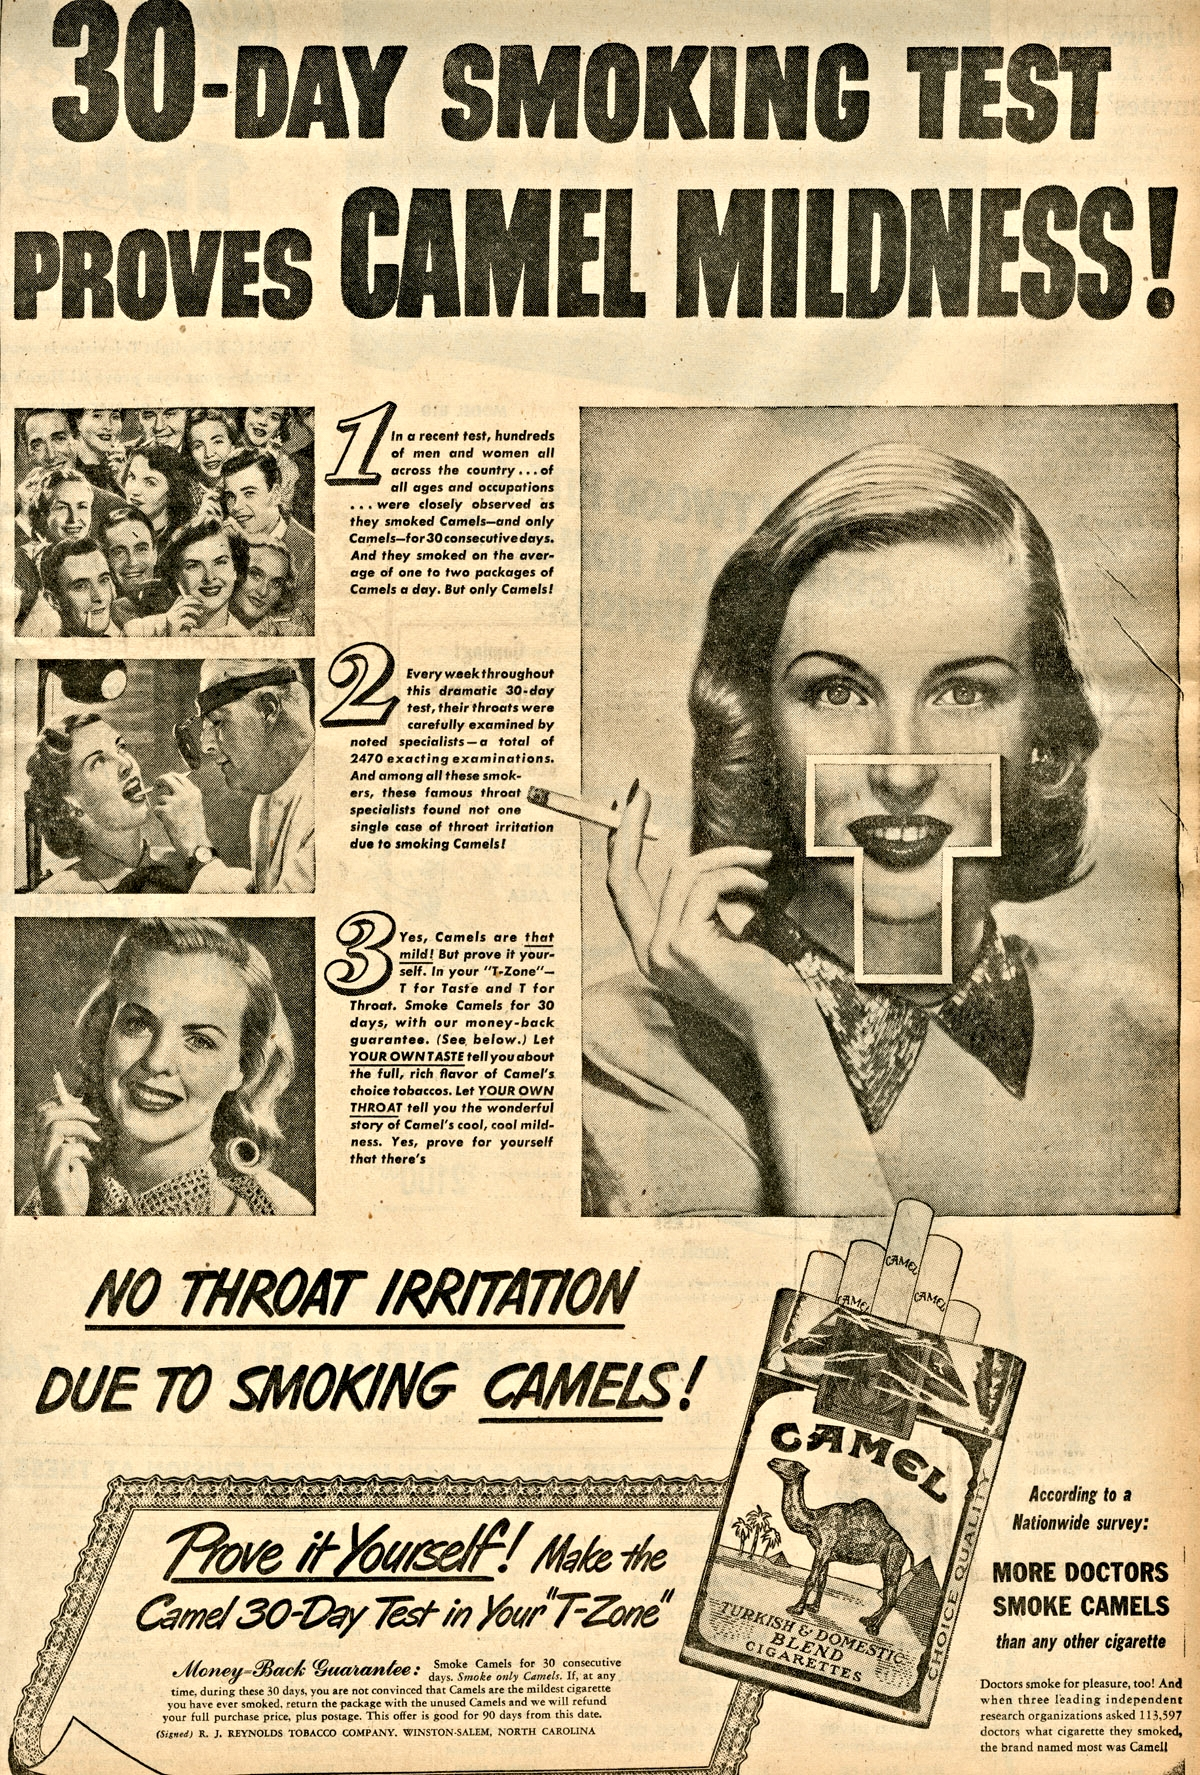 Typical 20th Century trial period smoking advertisement